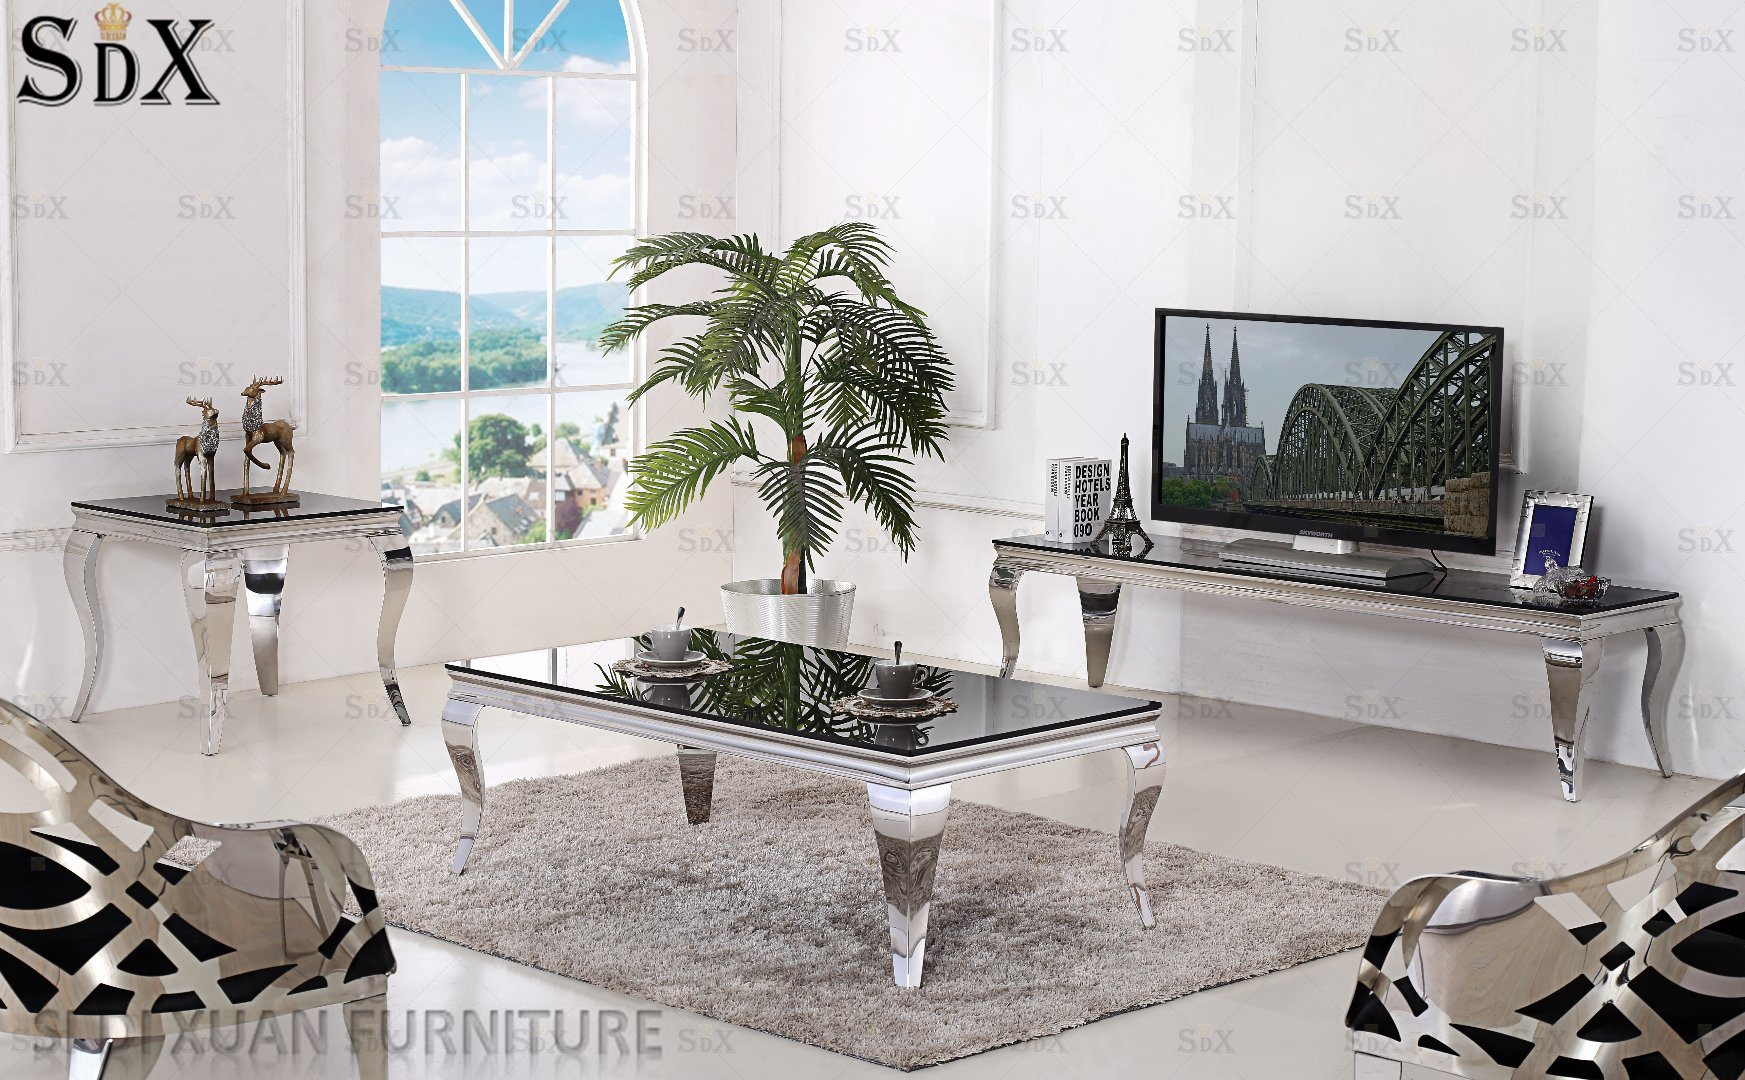 Hot Item Simple Glass Top Coffee Tables Stainless Steel Coffee Tables Living Room Tables For Sale within Living Room Sets For Sale